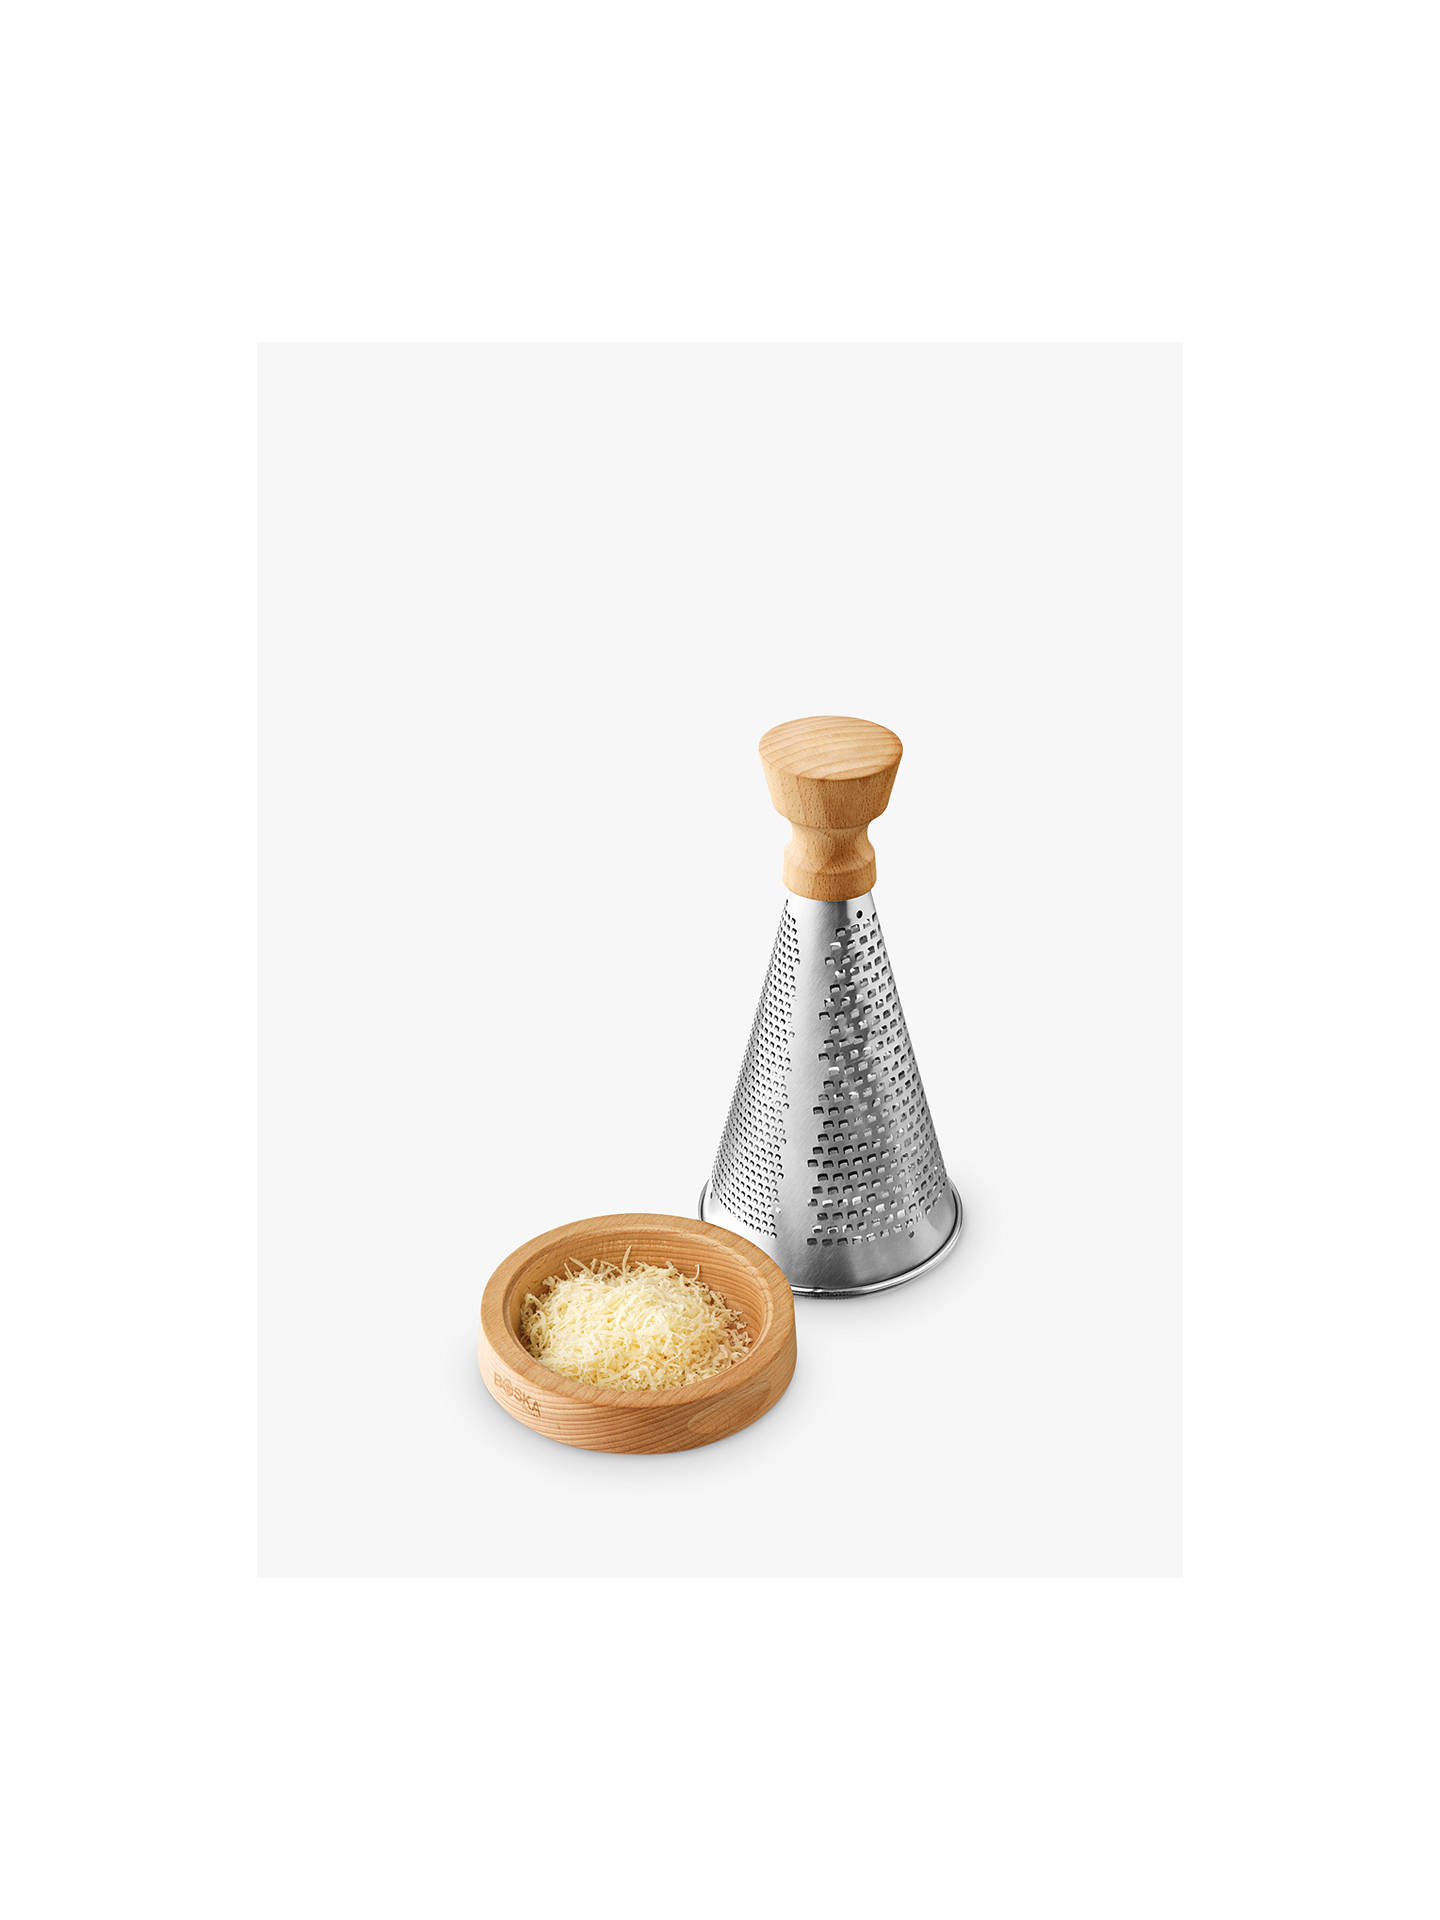 BuyBoska Oak Handle Table Grater, Stainless Steel Online at johnlewis.com